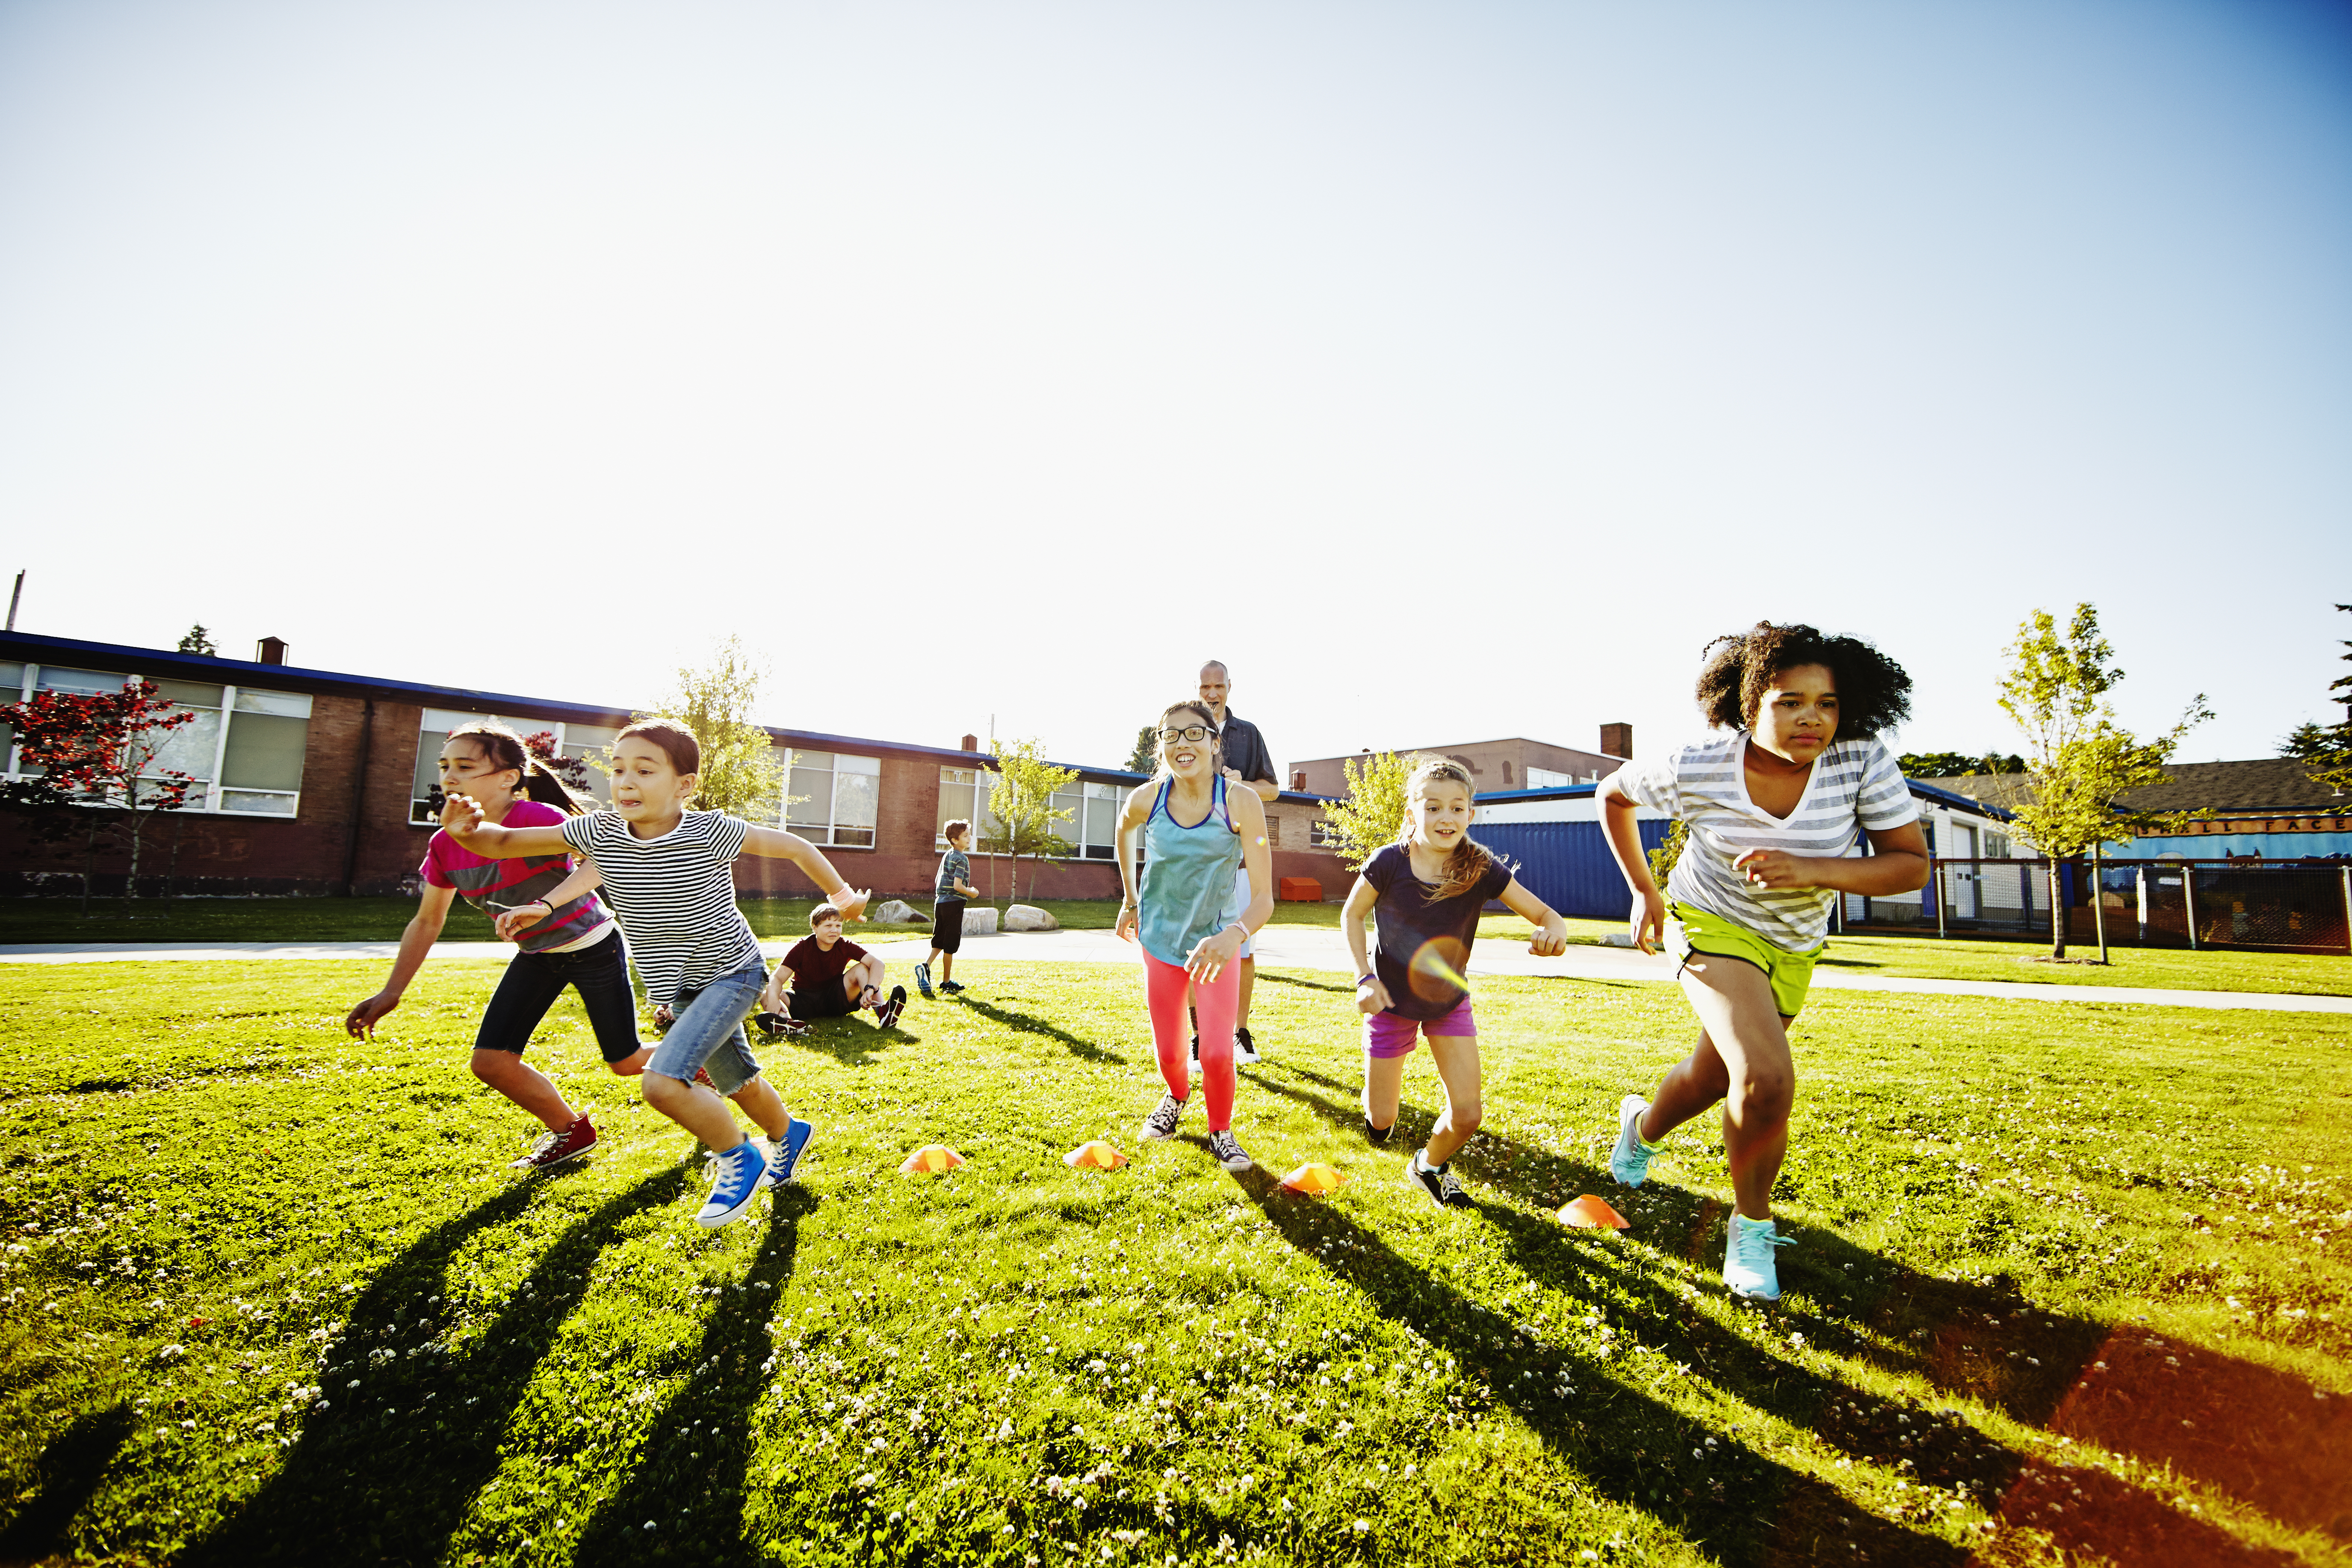 A group of elementary school girls have a foot race while a coach or teacher looks on.